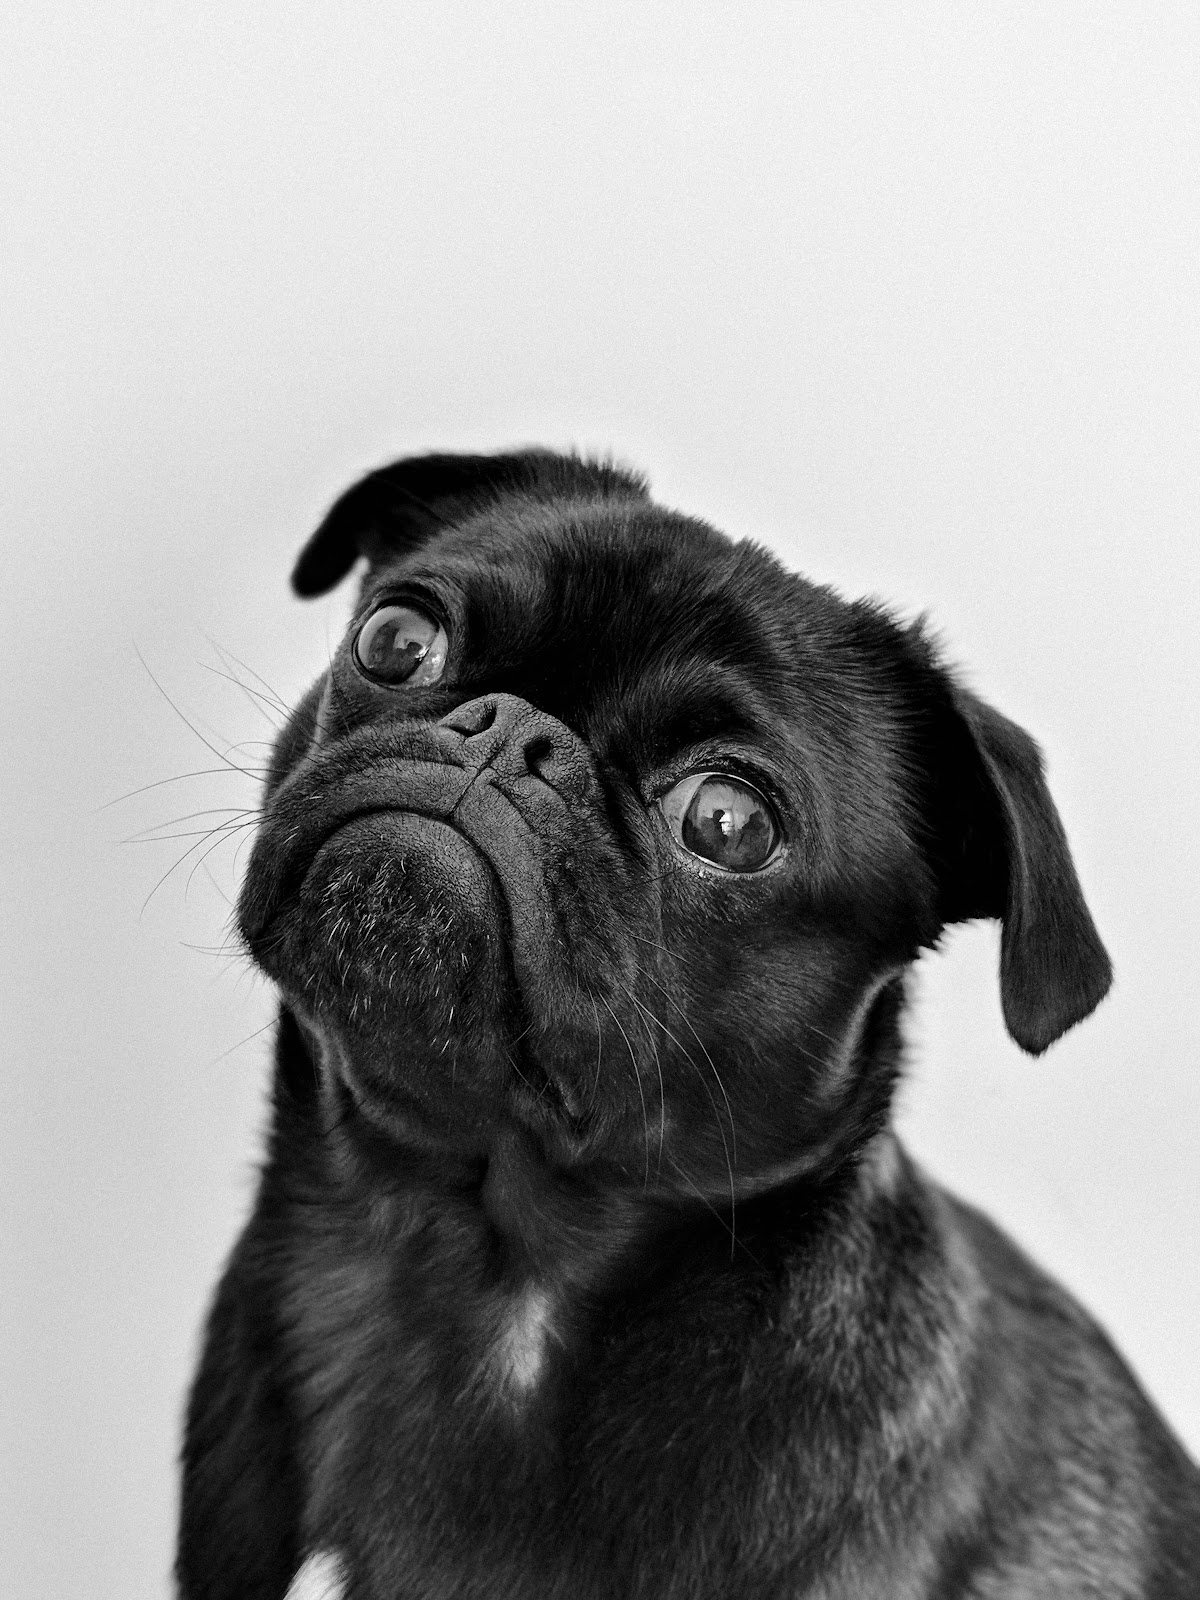 A black and white photo of a black pug tilting its head.